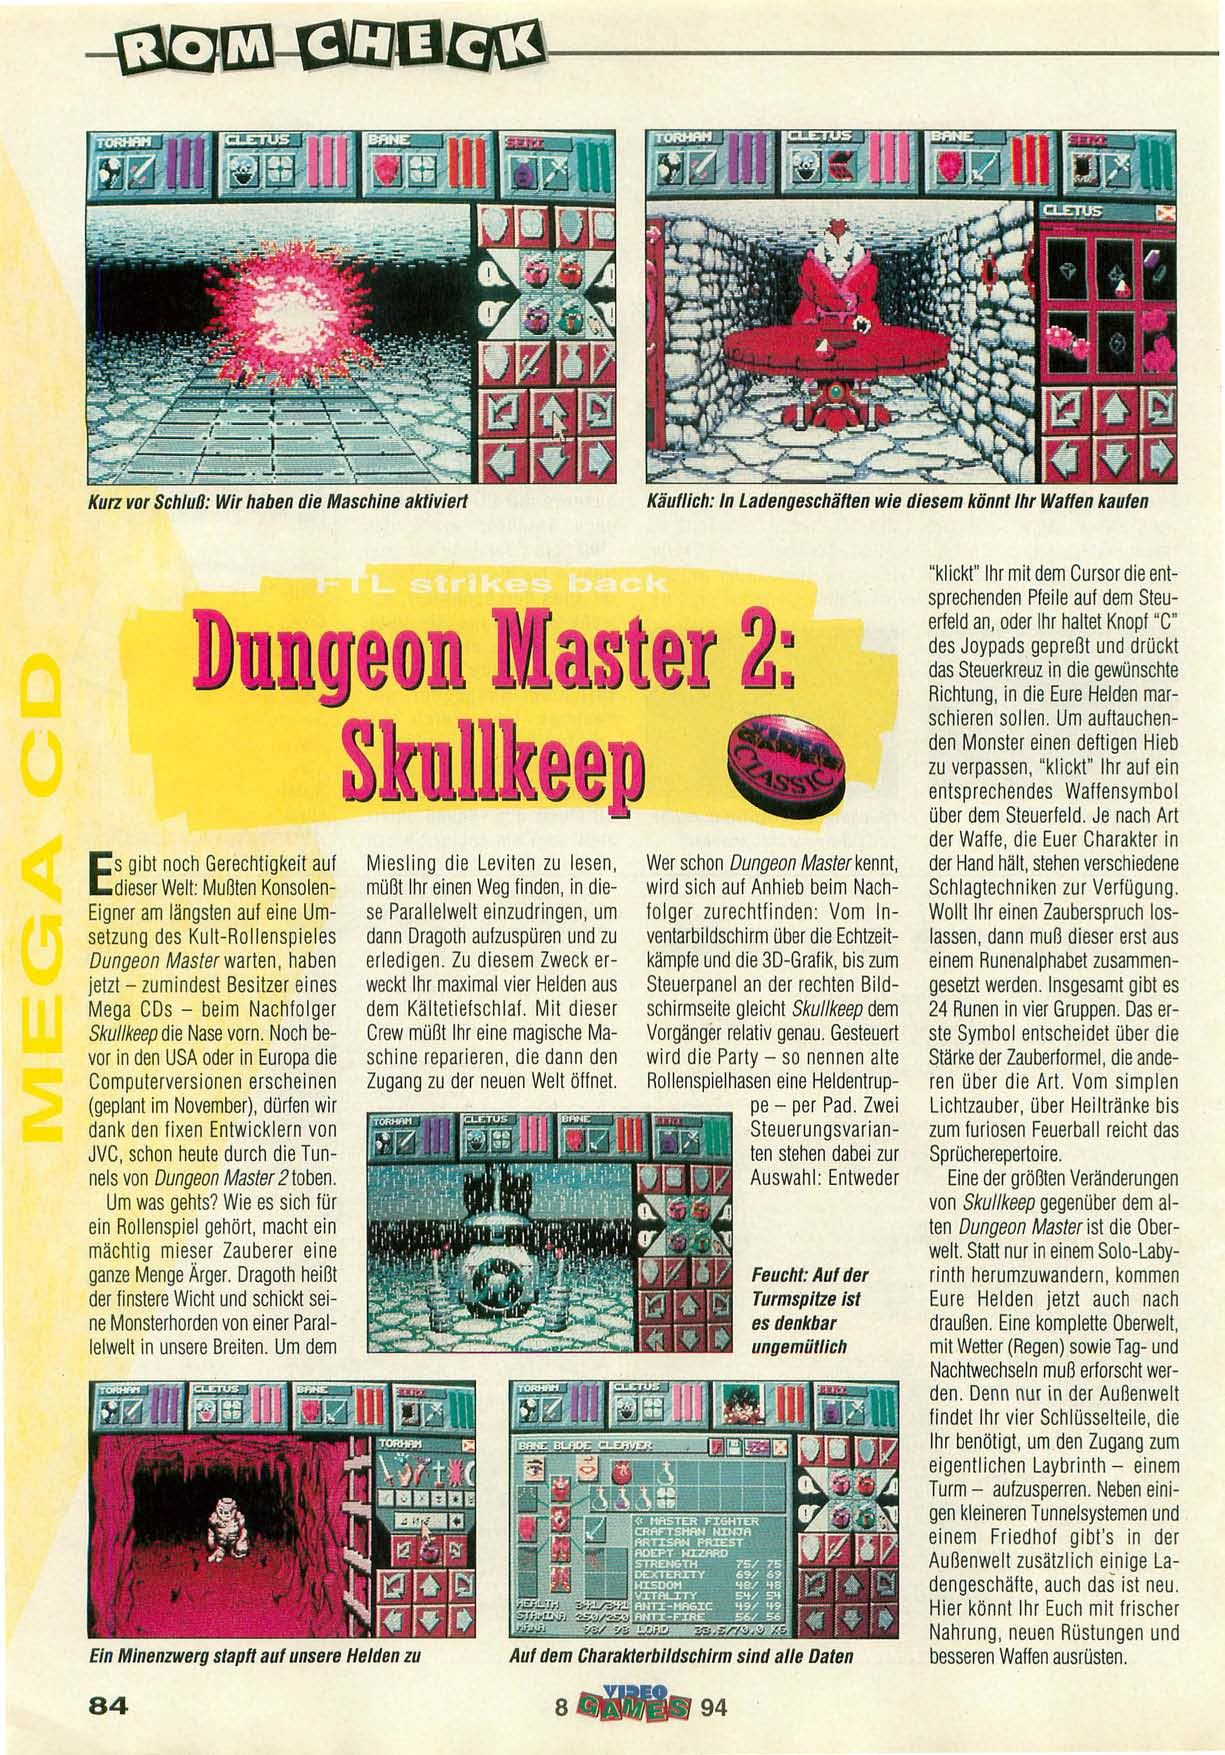 Dungeon Master II for Mega CD Review published in German magazine 'VideoGames', August 1994, Page 84